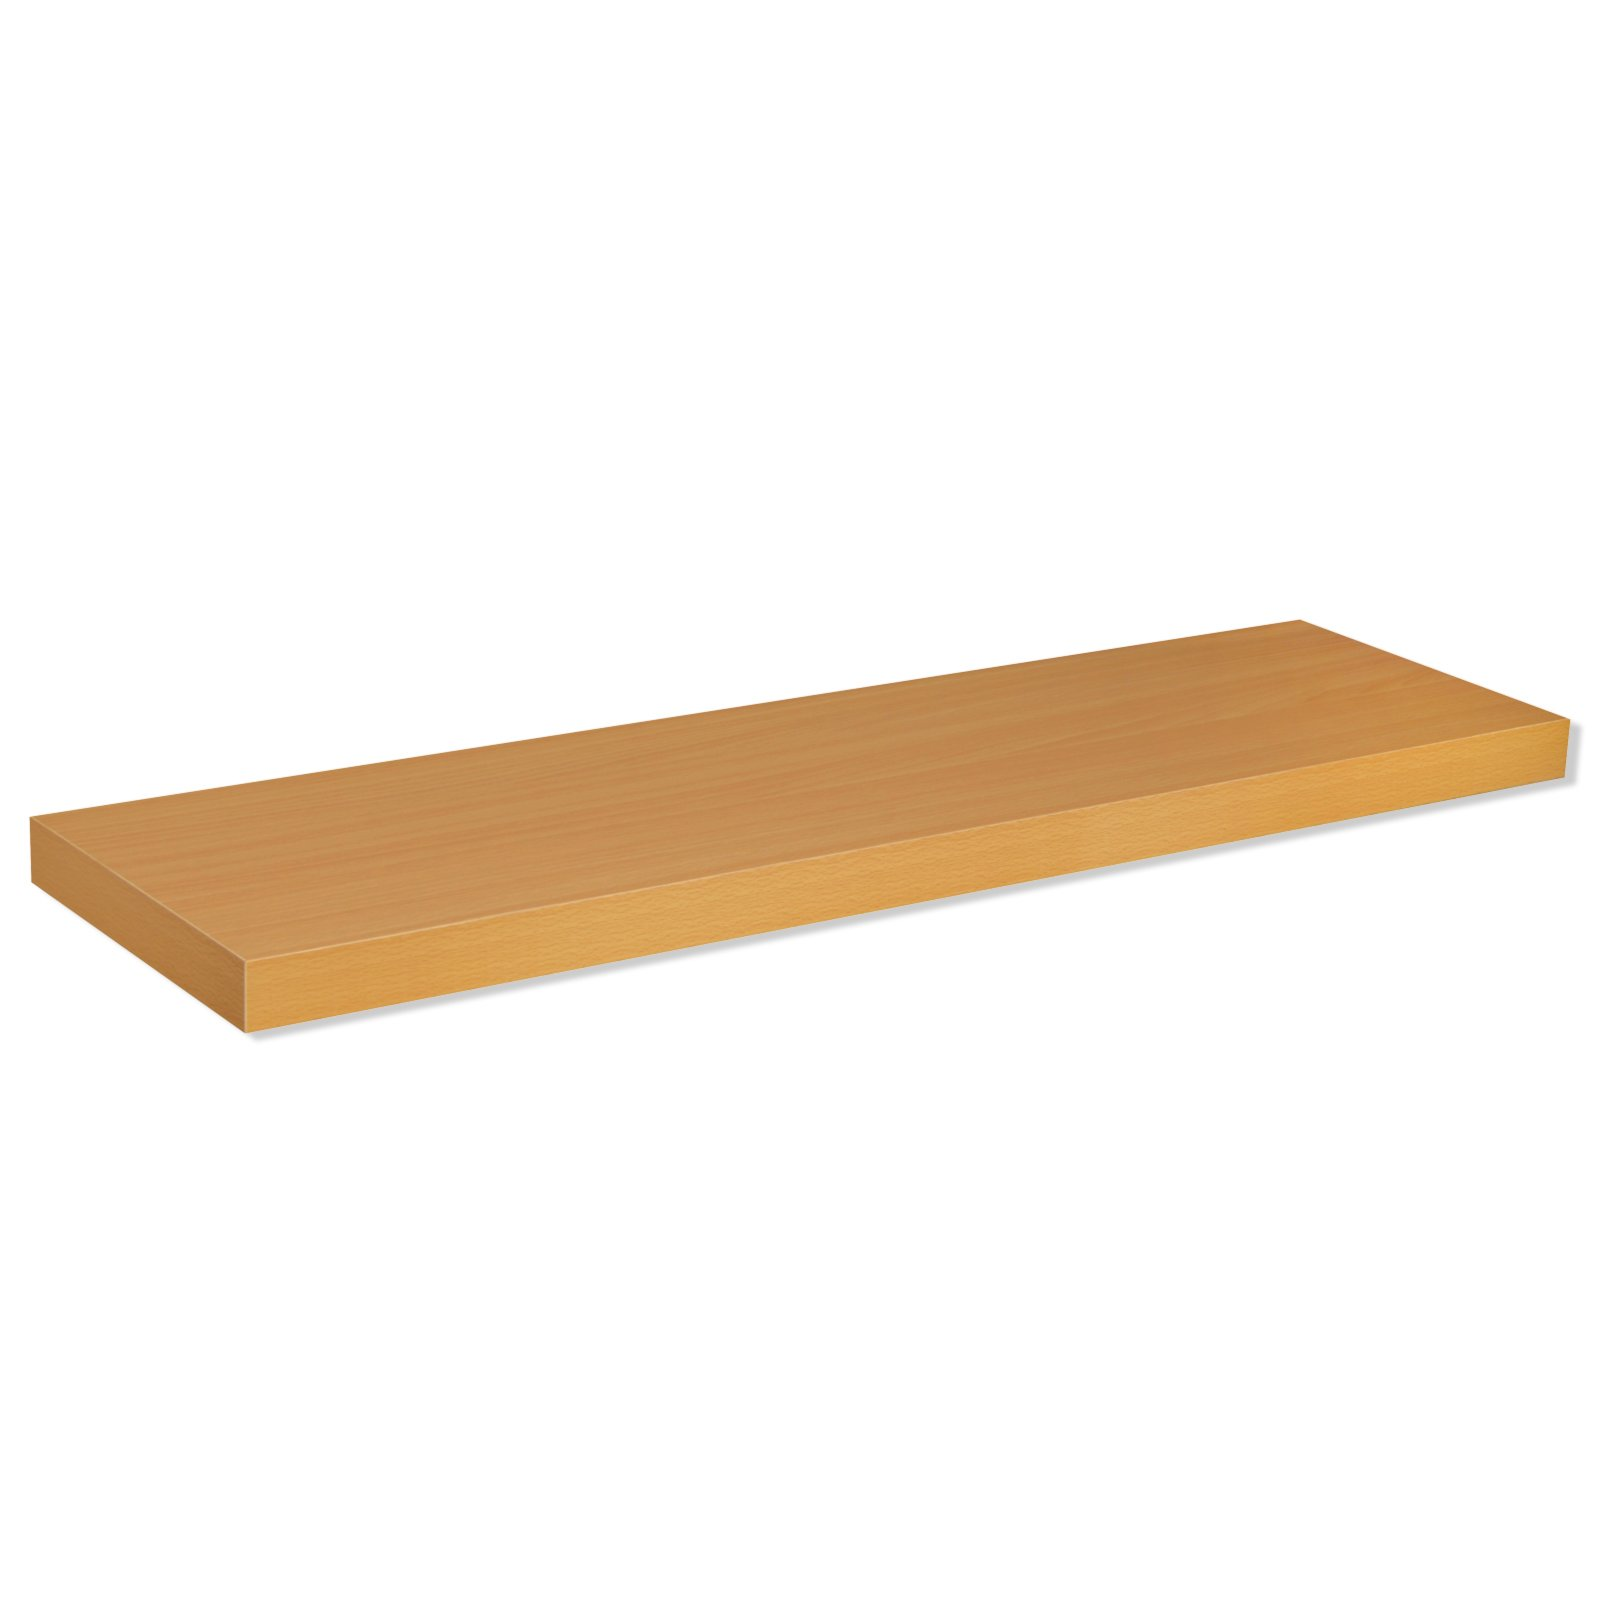 Bücherbord Holz Wandregal Beech Buche 90 Cm Wandregale And Boards